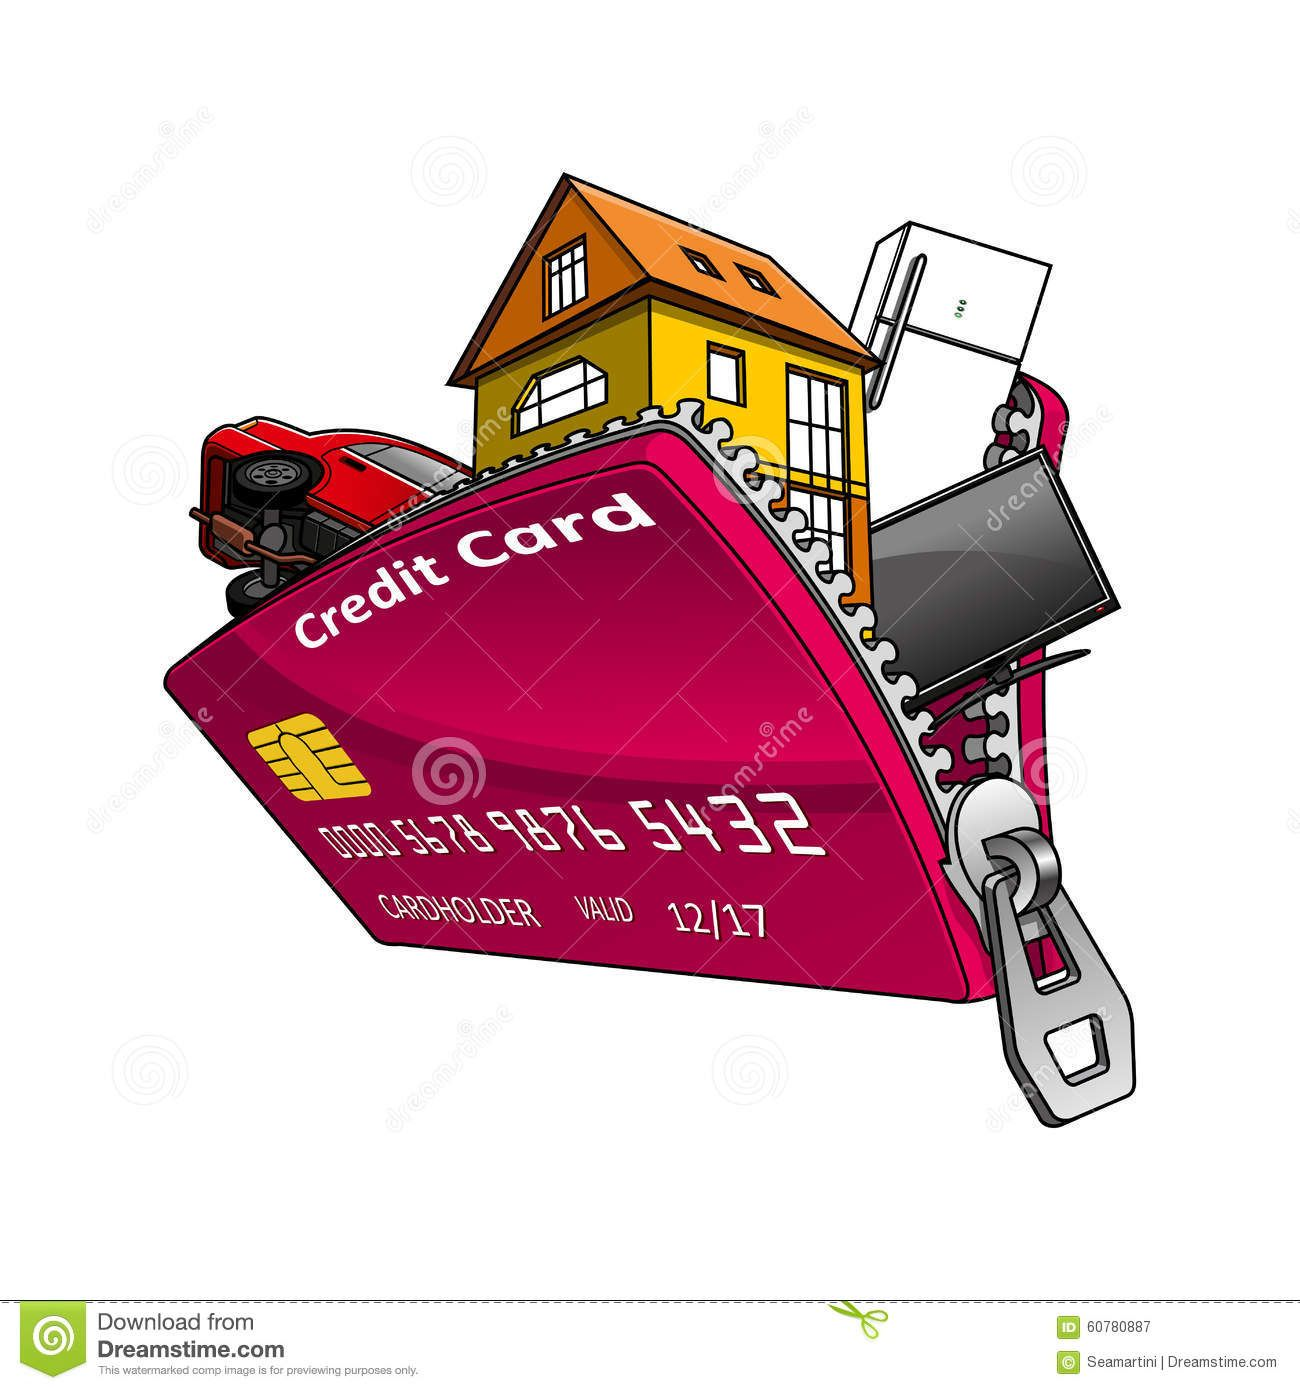 home design credit card and landscaping excellent simple under ... on business credit card, microsoft credit card, fishing credit card, government credit card, security credit card, food credit card, toys credit card, shopping credit card, storage credit card,